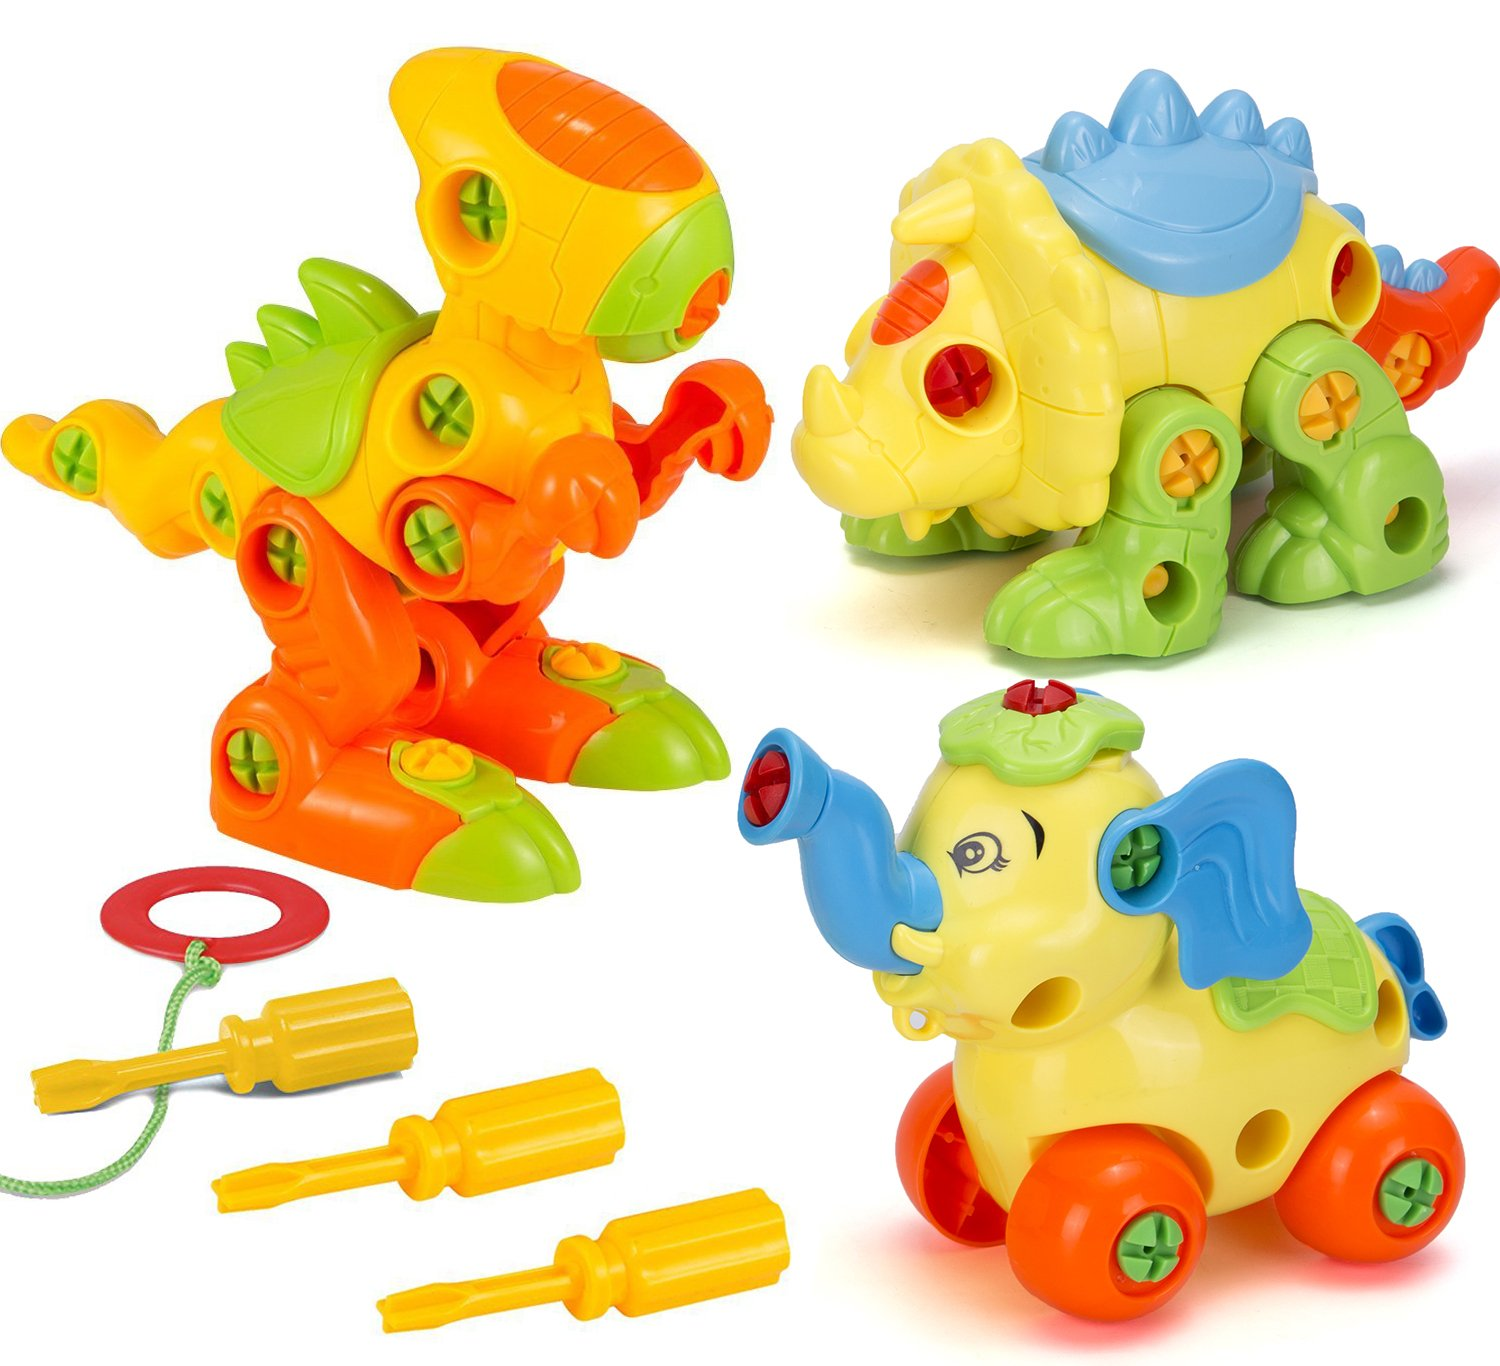 Kimicare Take Apart Dinosaur Toy Set with Screwdriver Tools, STEM Construction Engineering Building Playset Learning Toys for Boys Girls Gift, 3 Pack